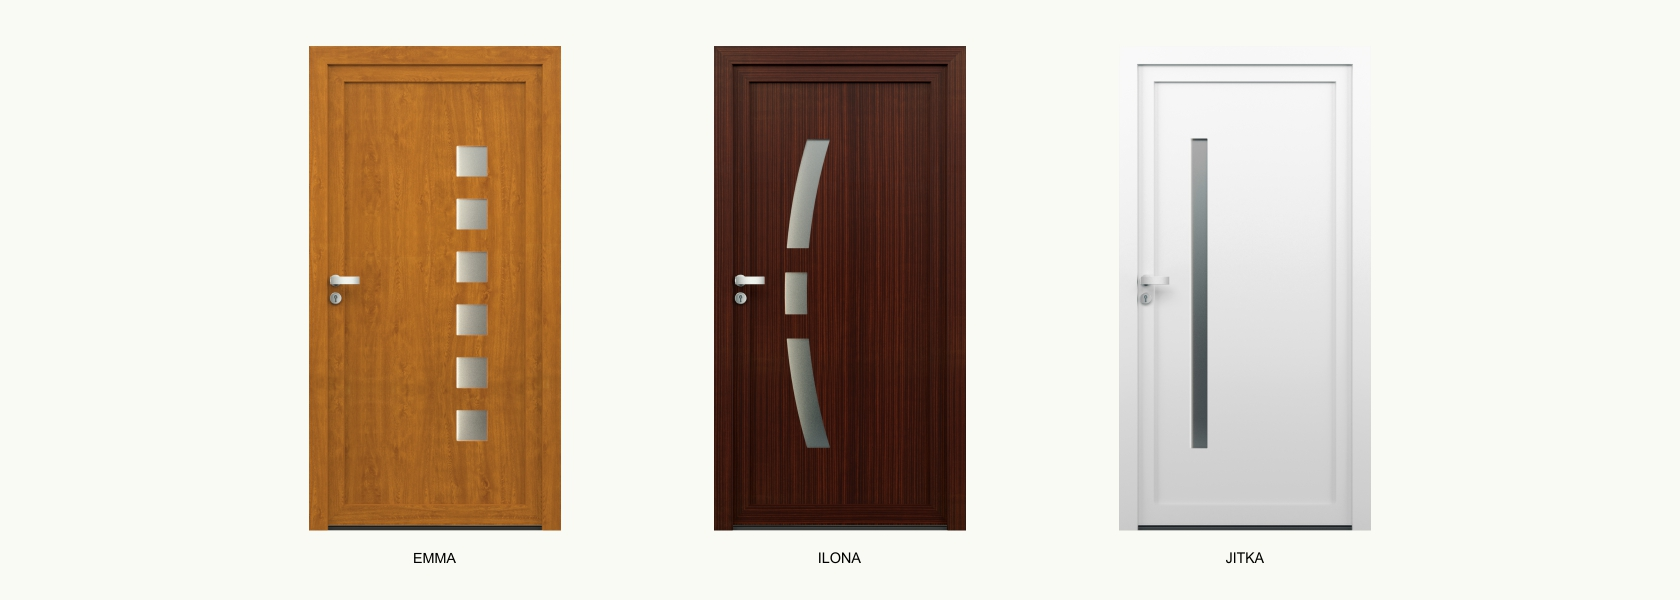 pvc infill panels for front doors